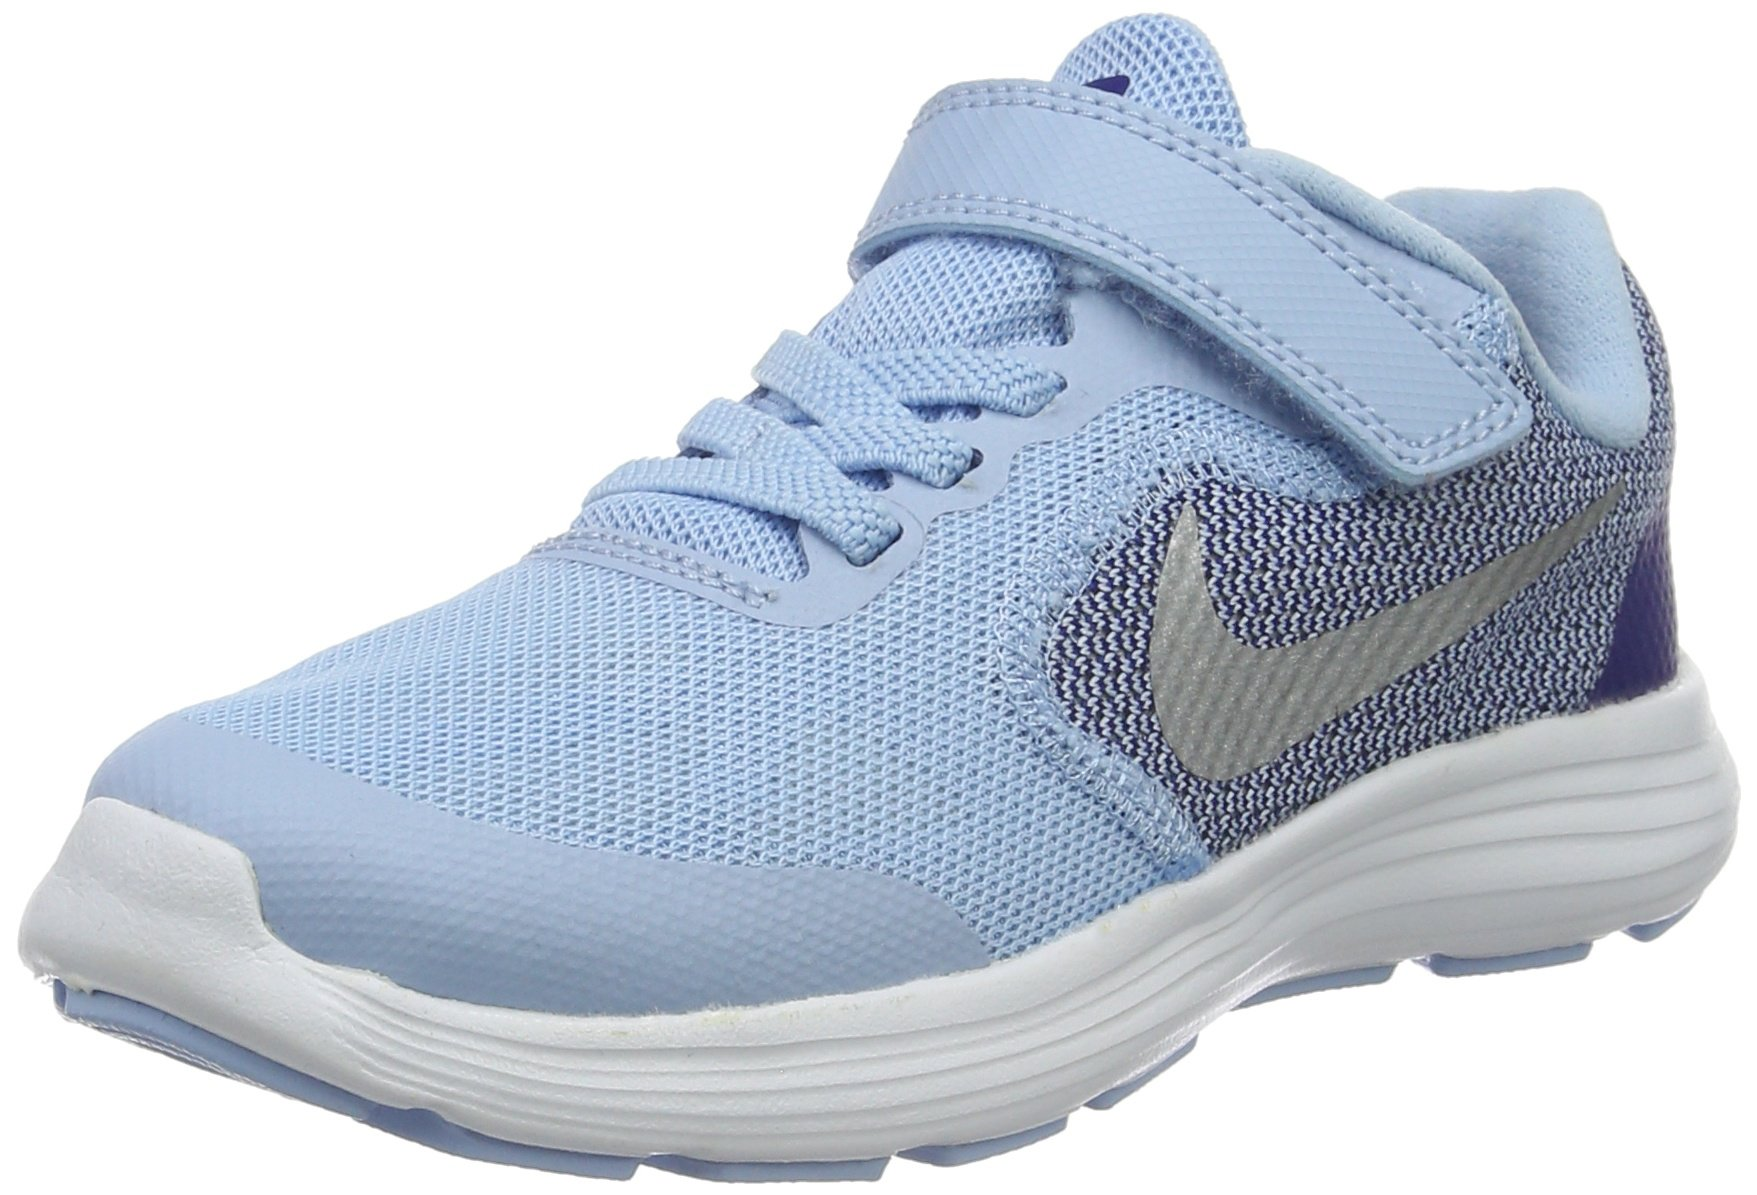 NIKE Kids' Revolution 3 (Psv) Running-Shoes, Bluecap/Metallic Silver/Deep Royal Blue, 1 M US Little Kid